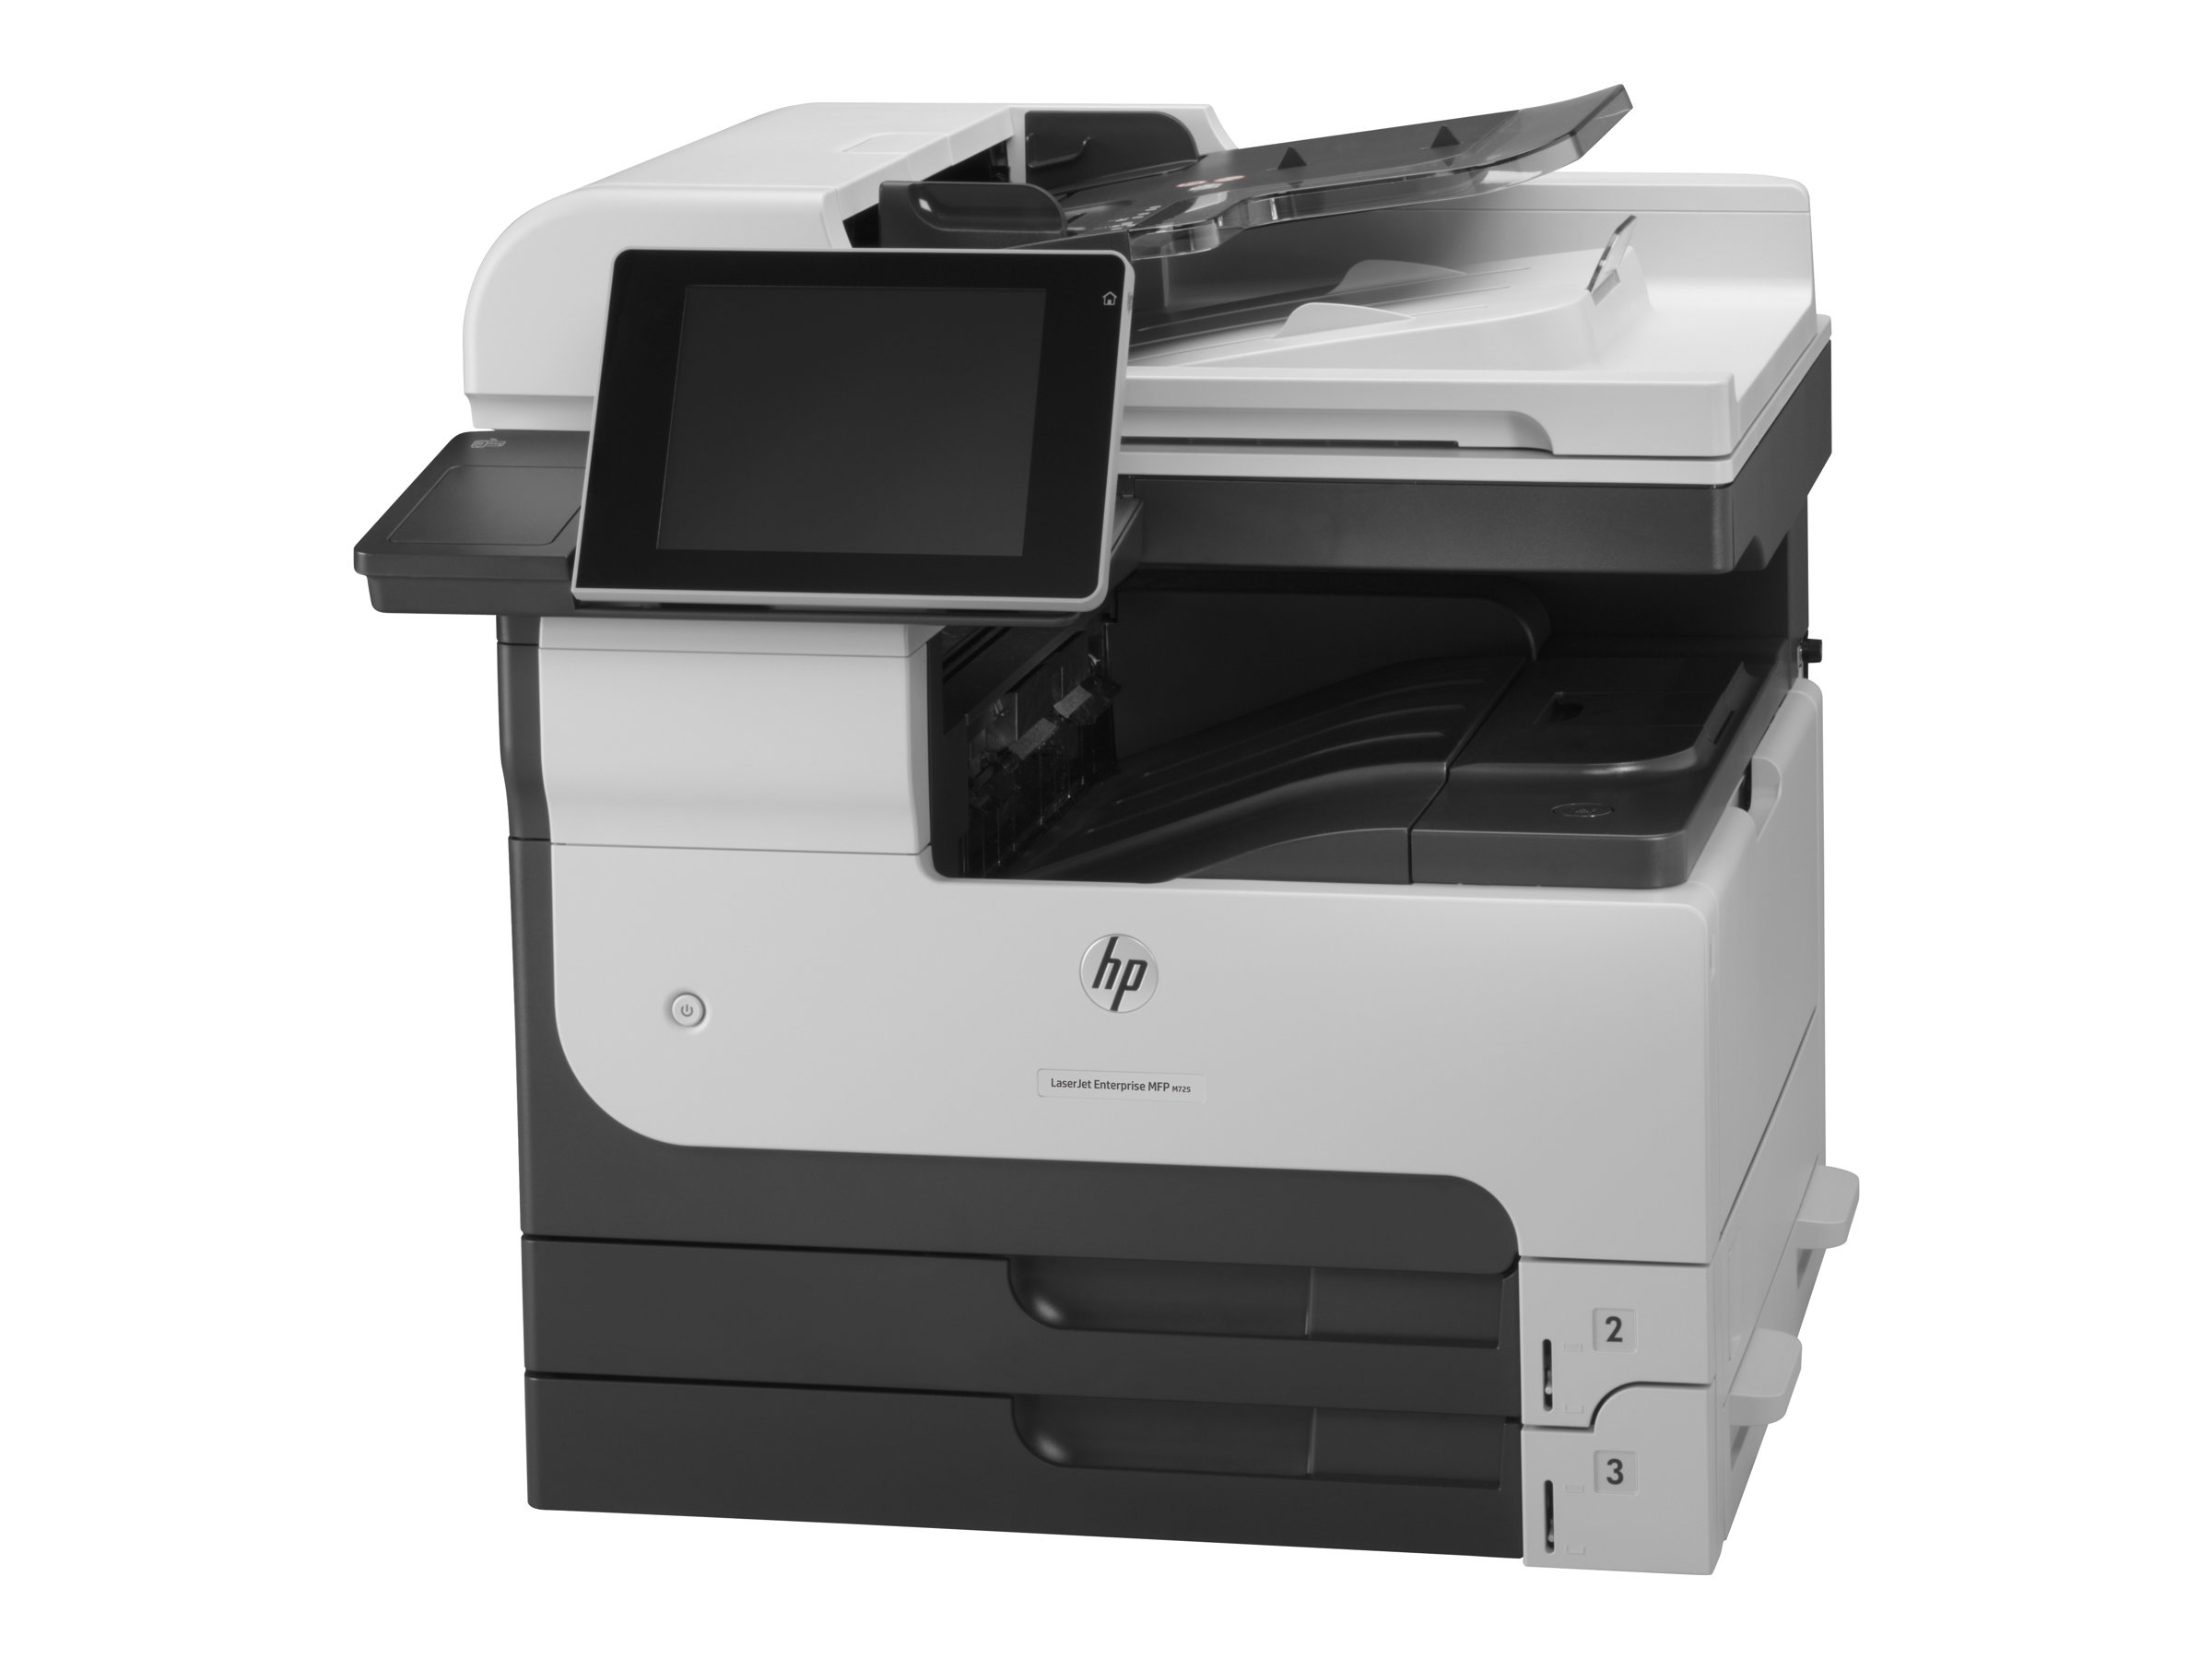 HP LaserJet Enterprise MFP M725dn - Multifunktionsdrucker - s/w - Laser - A3 (297 x 420 mm) (Original) - A3/Ledger (Medien)